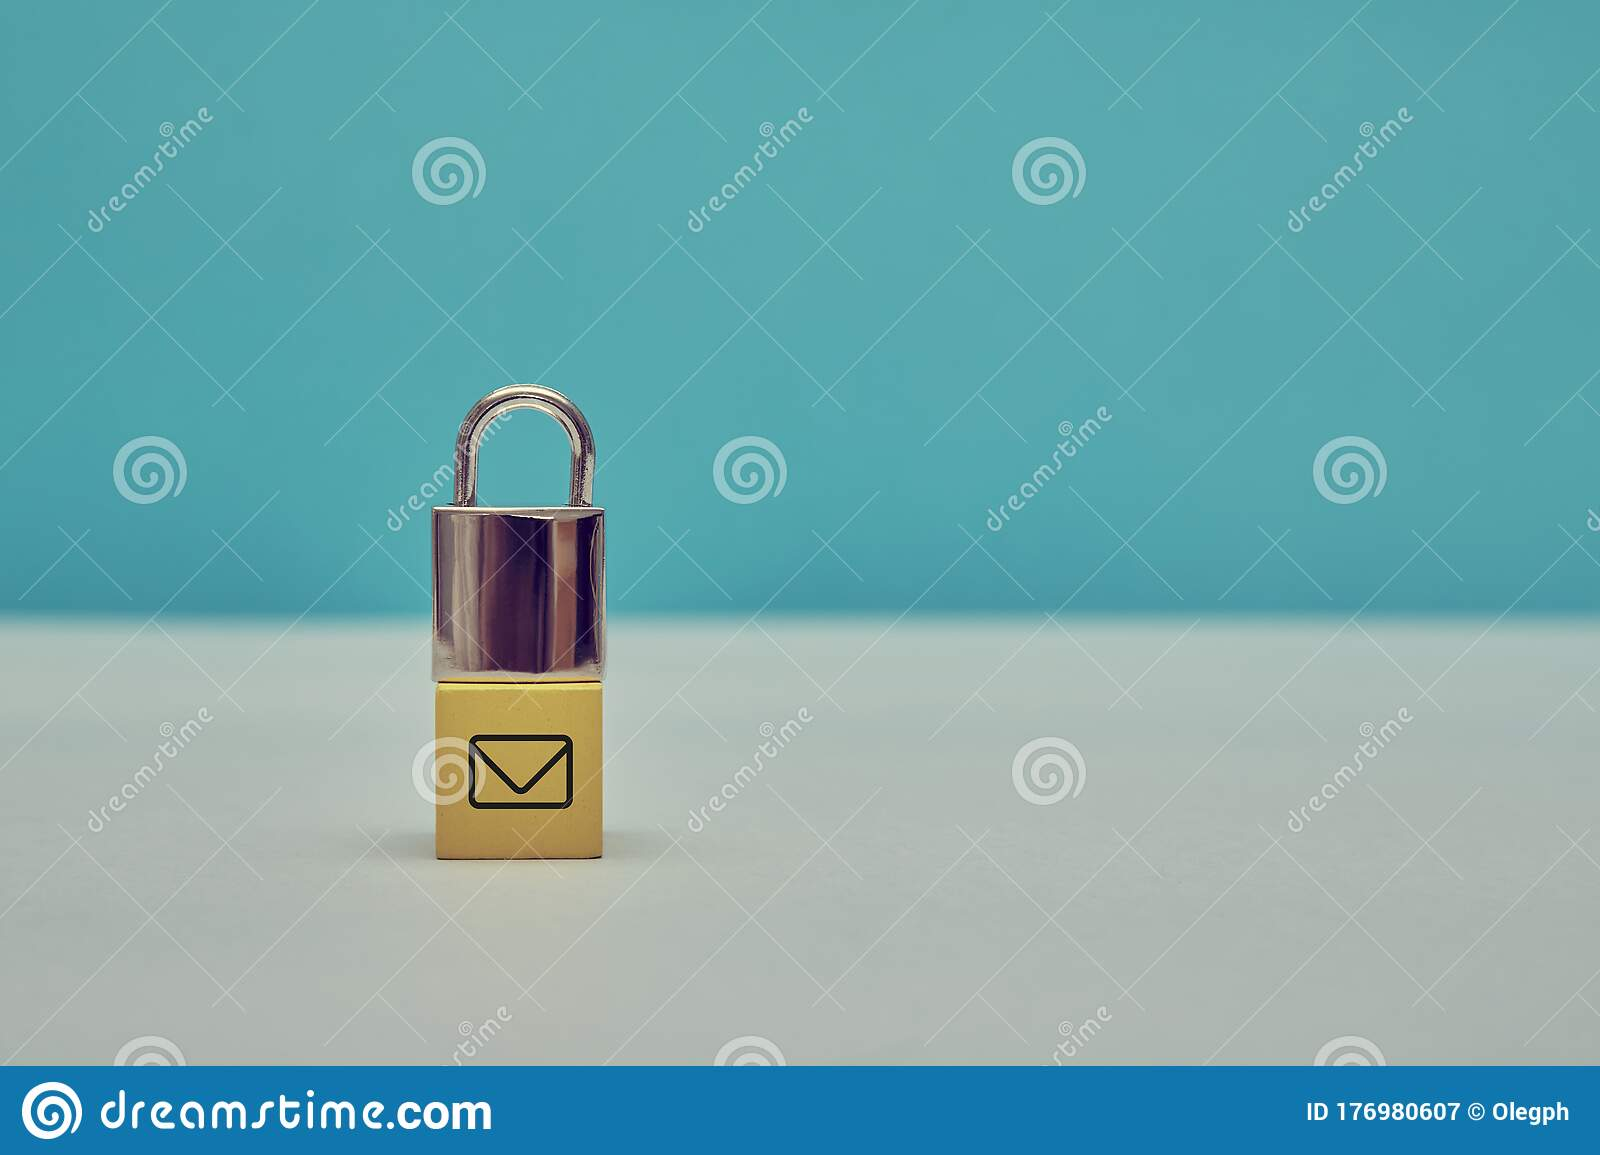 Correspondence Security Social Network Safety